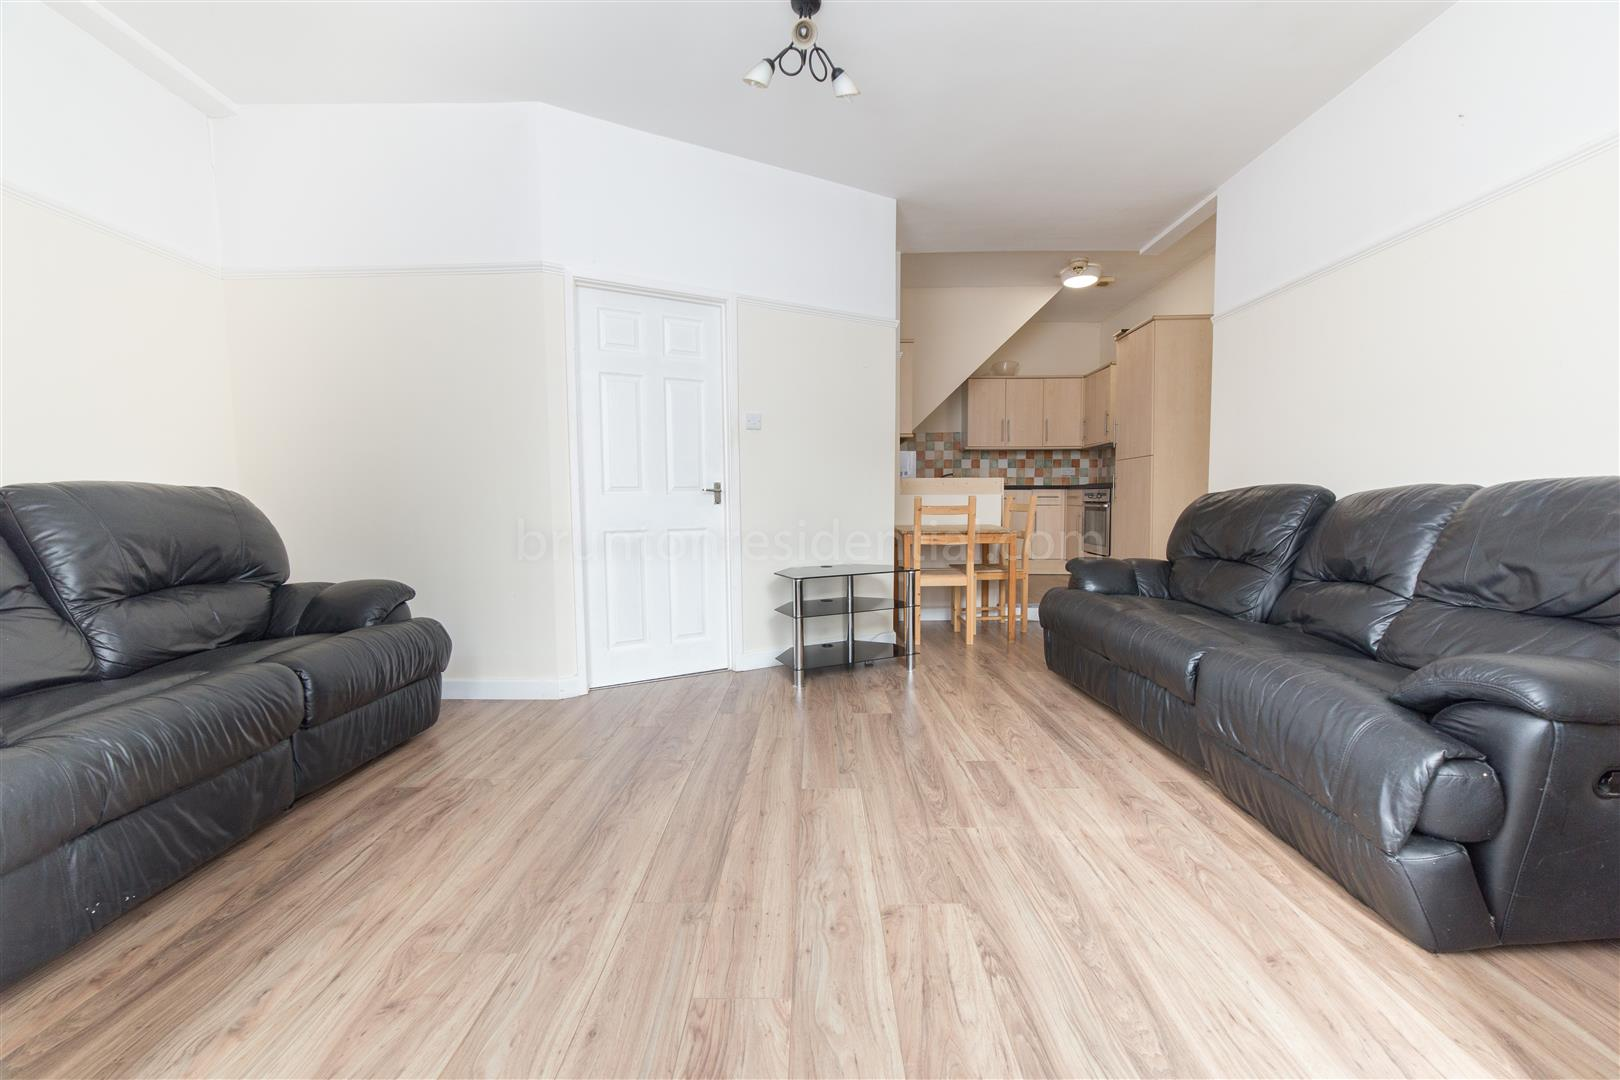 2 bed flat to rent in Newcastle Upon Tyne, NE6 5TA, NE6